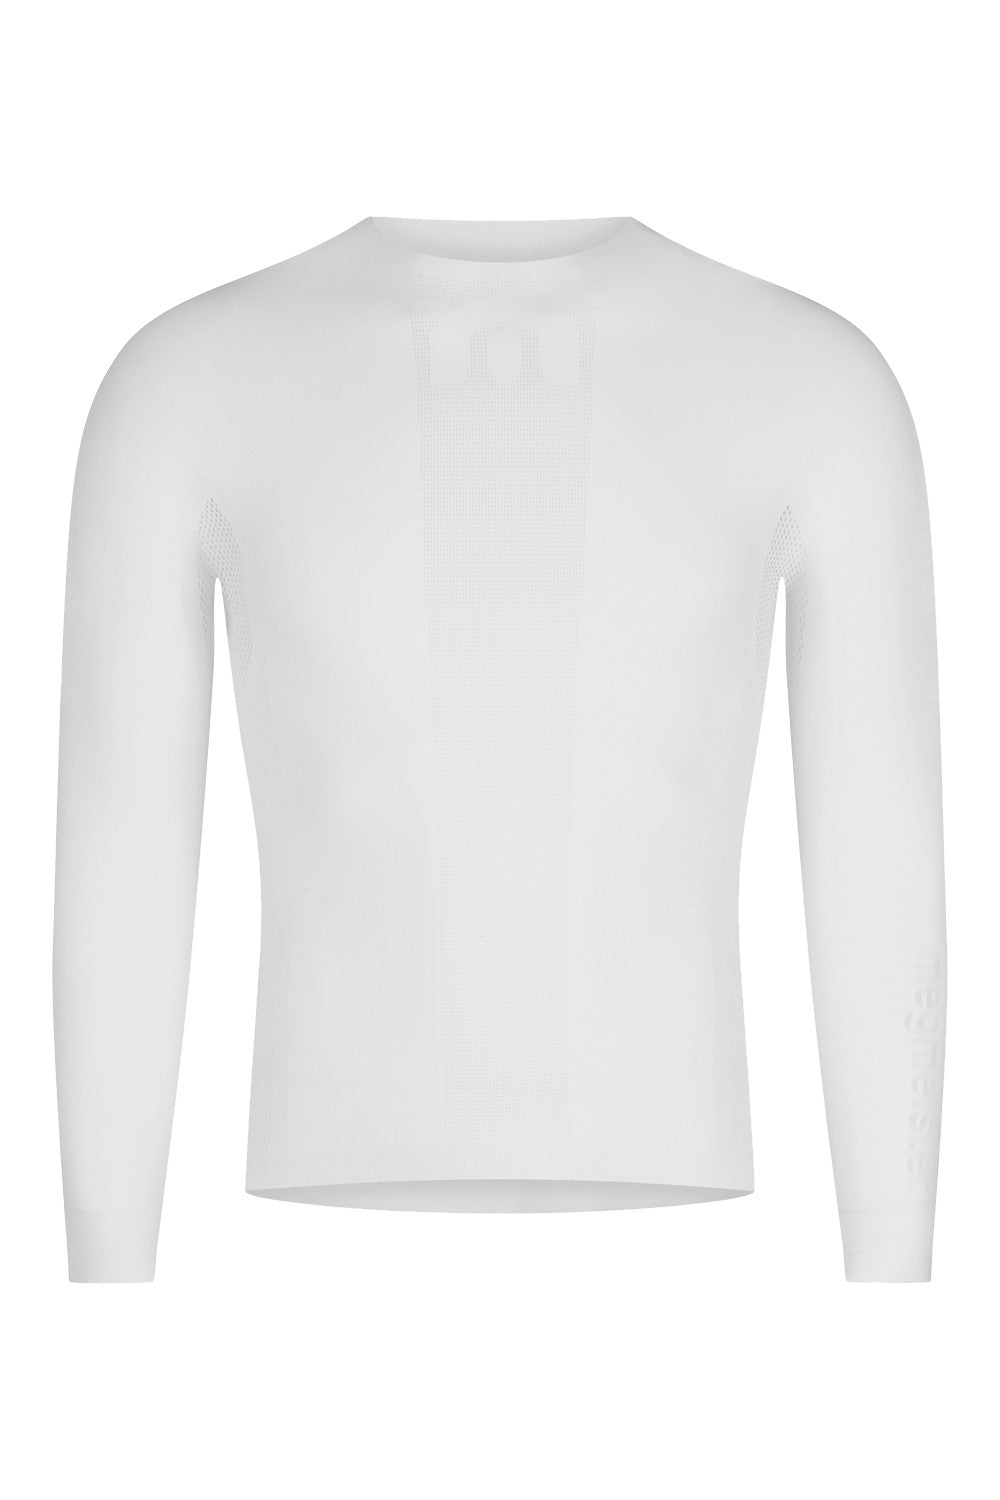 mens-drynamo-cycle-long-sleeve-base-layer-front-in-white